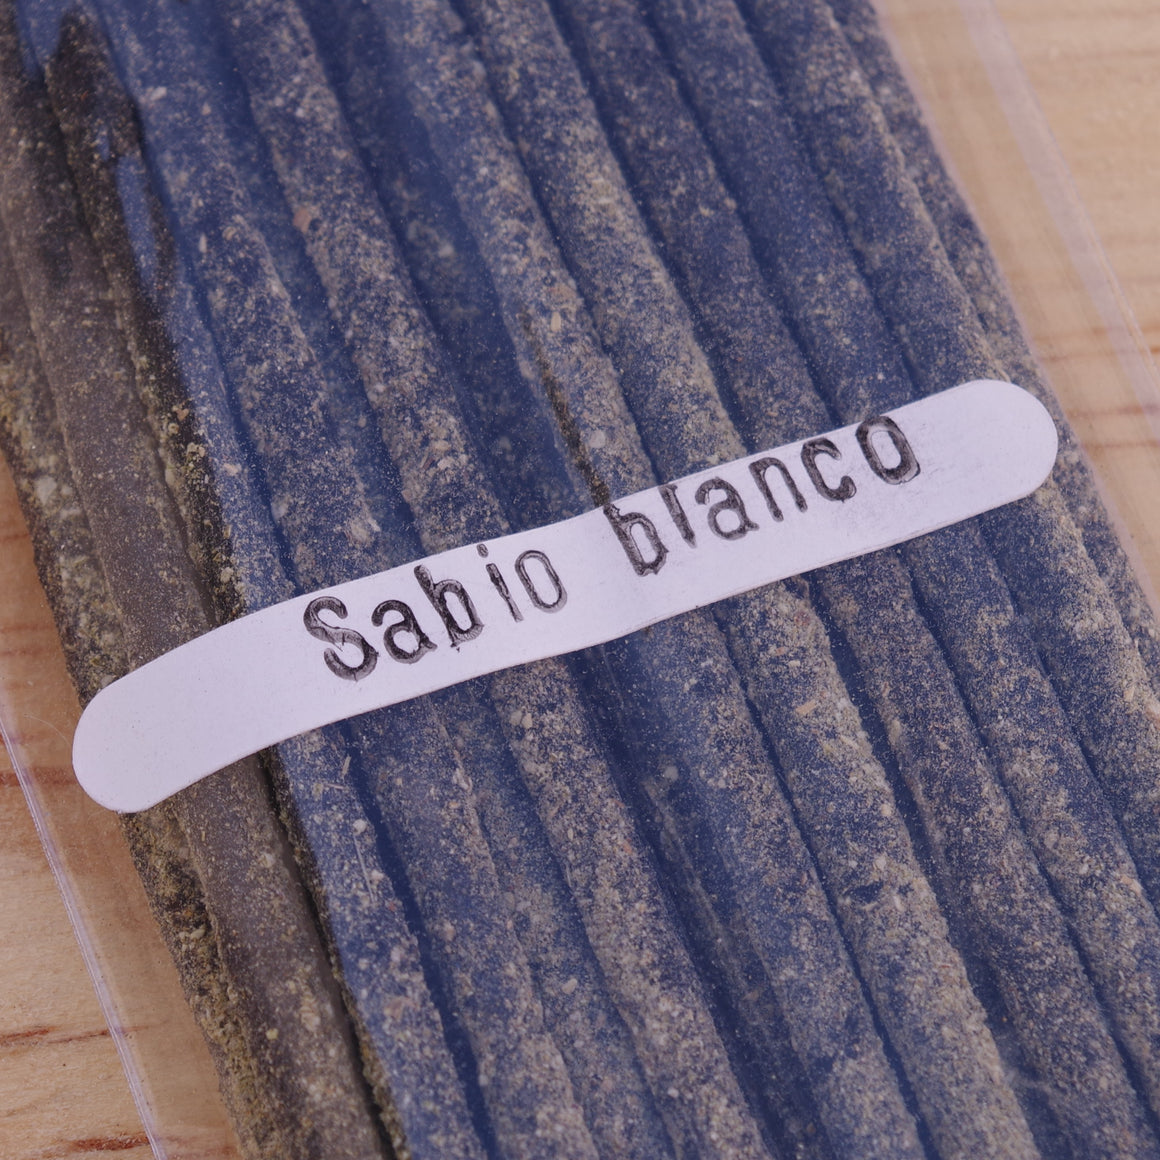 200 White Sage Shorties Incense Sticks Handrolled In Mexico